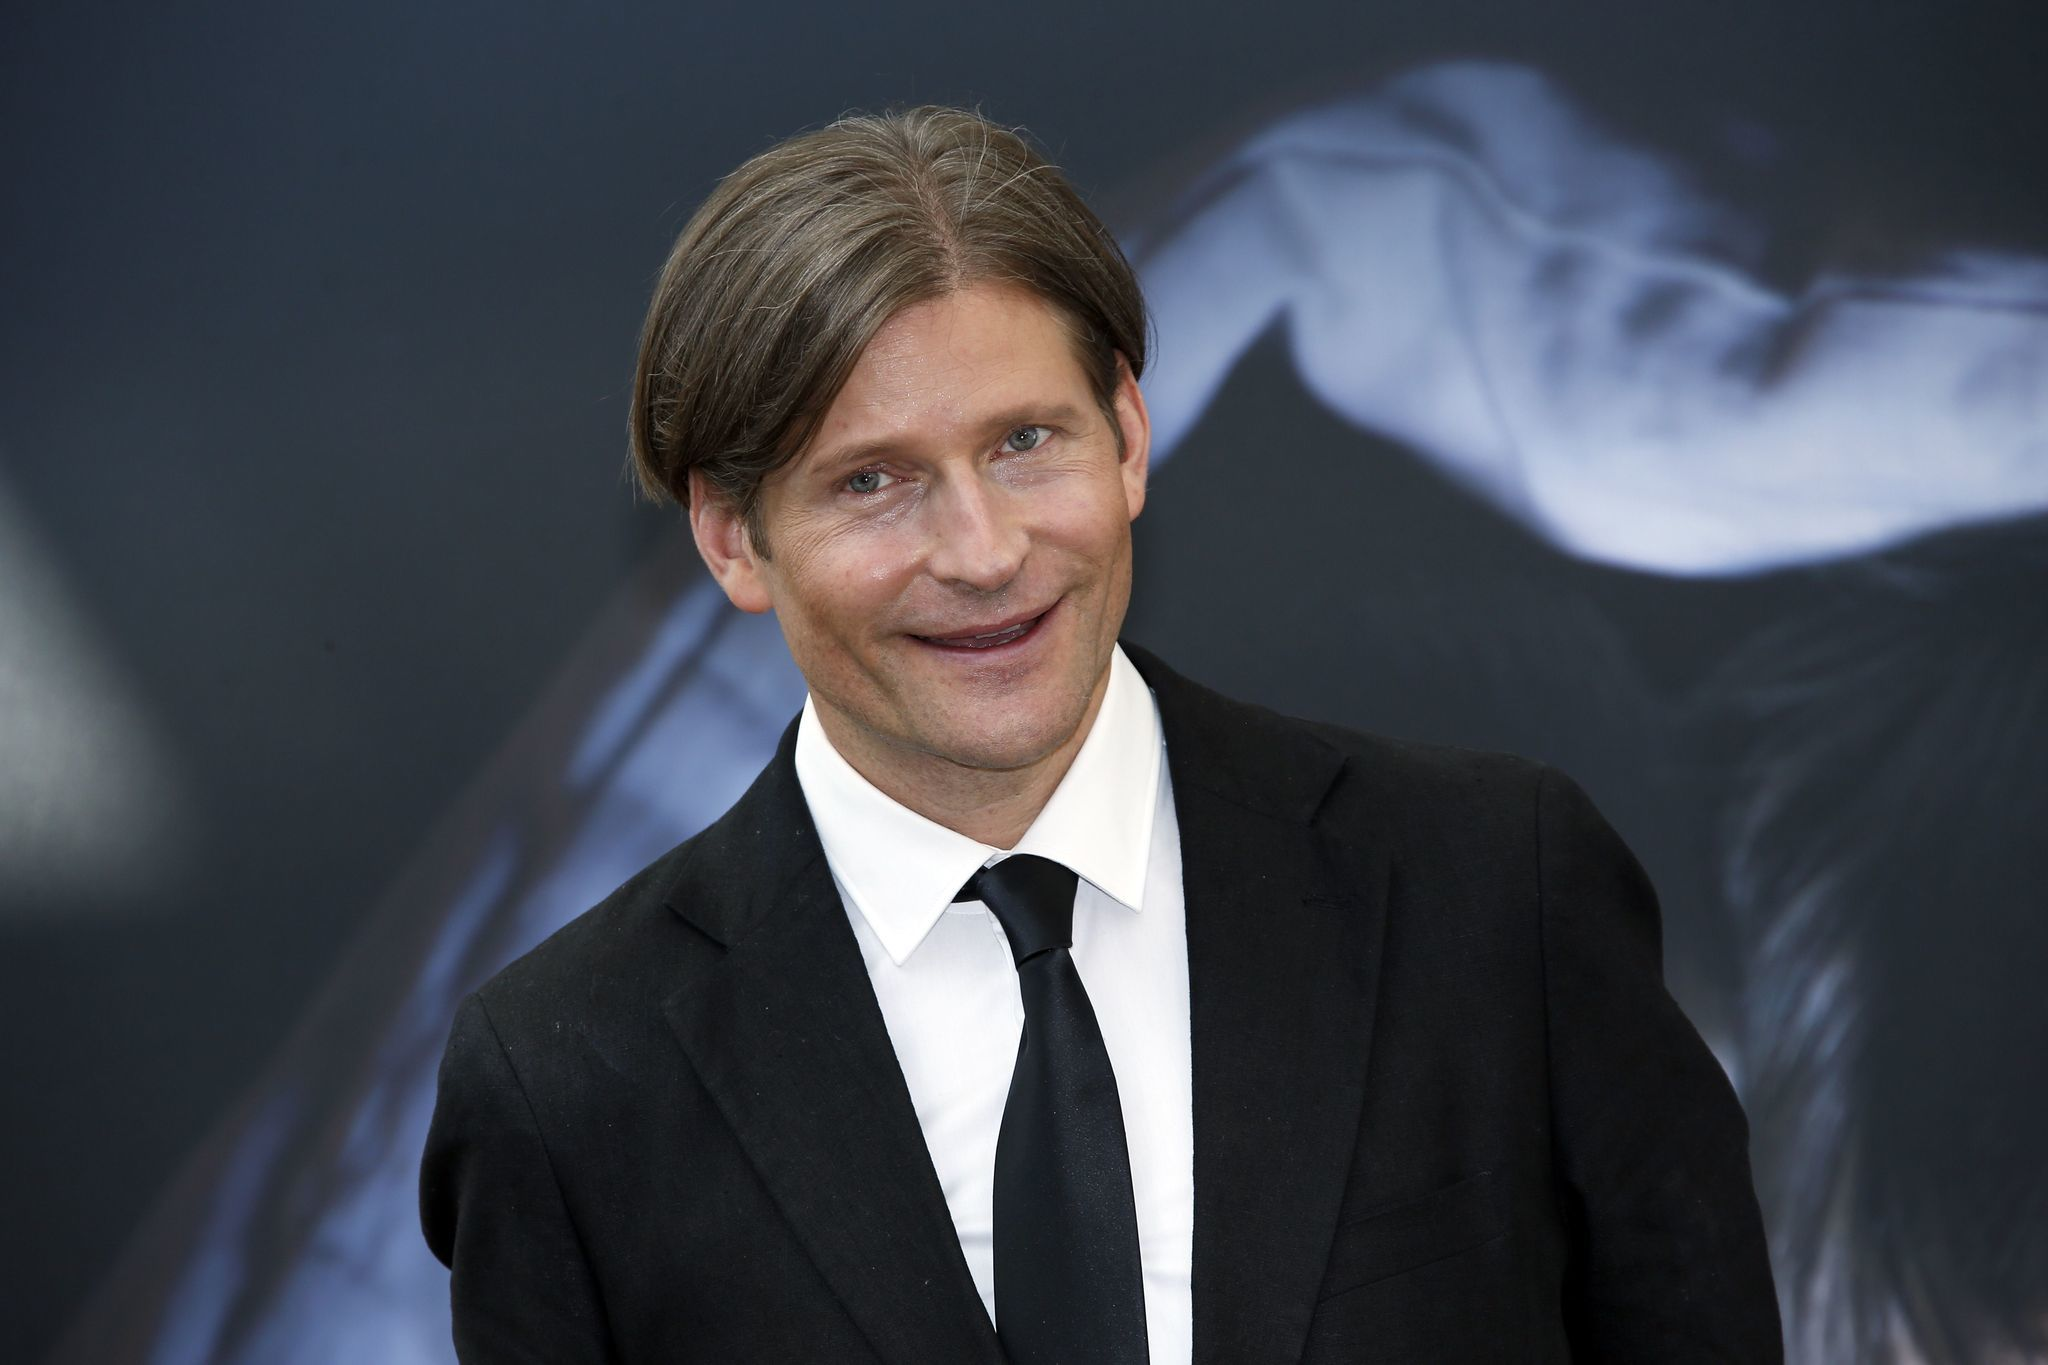 Preppy Crispin Glover net worth in 2017: See his LA house ...